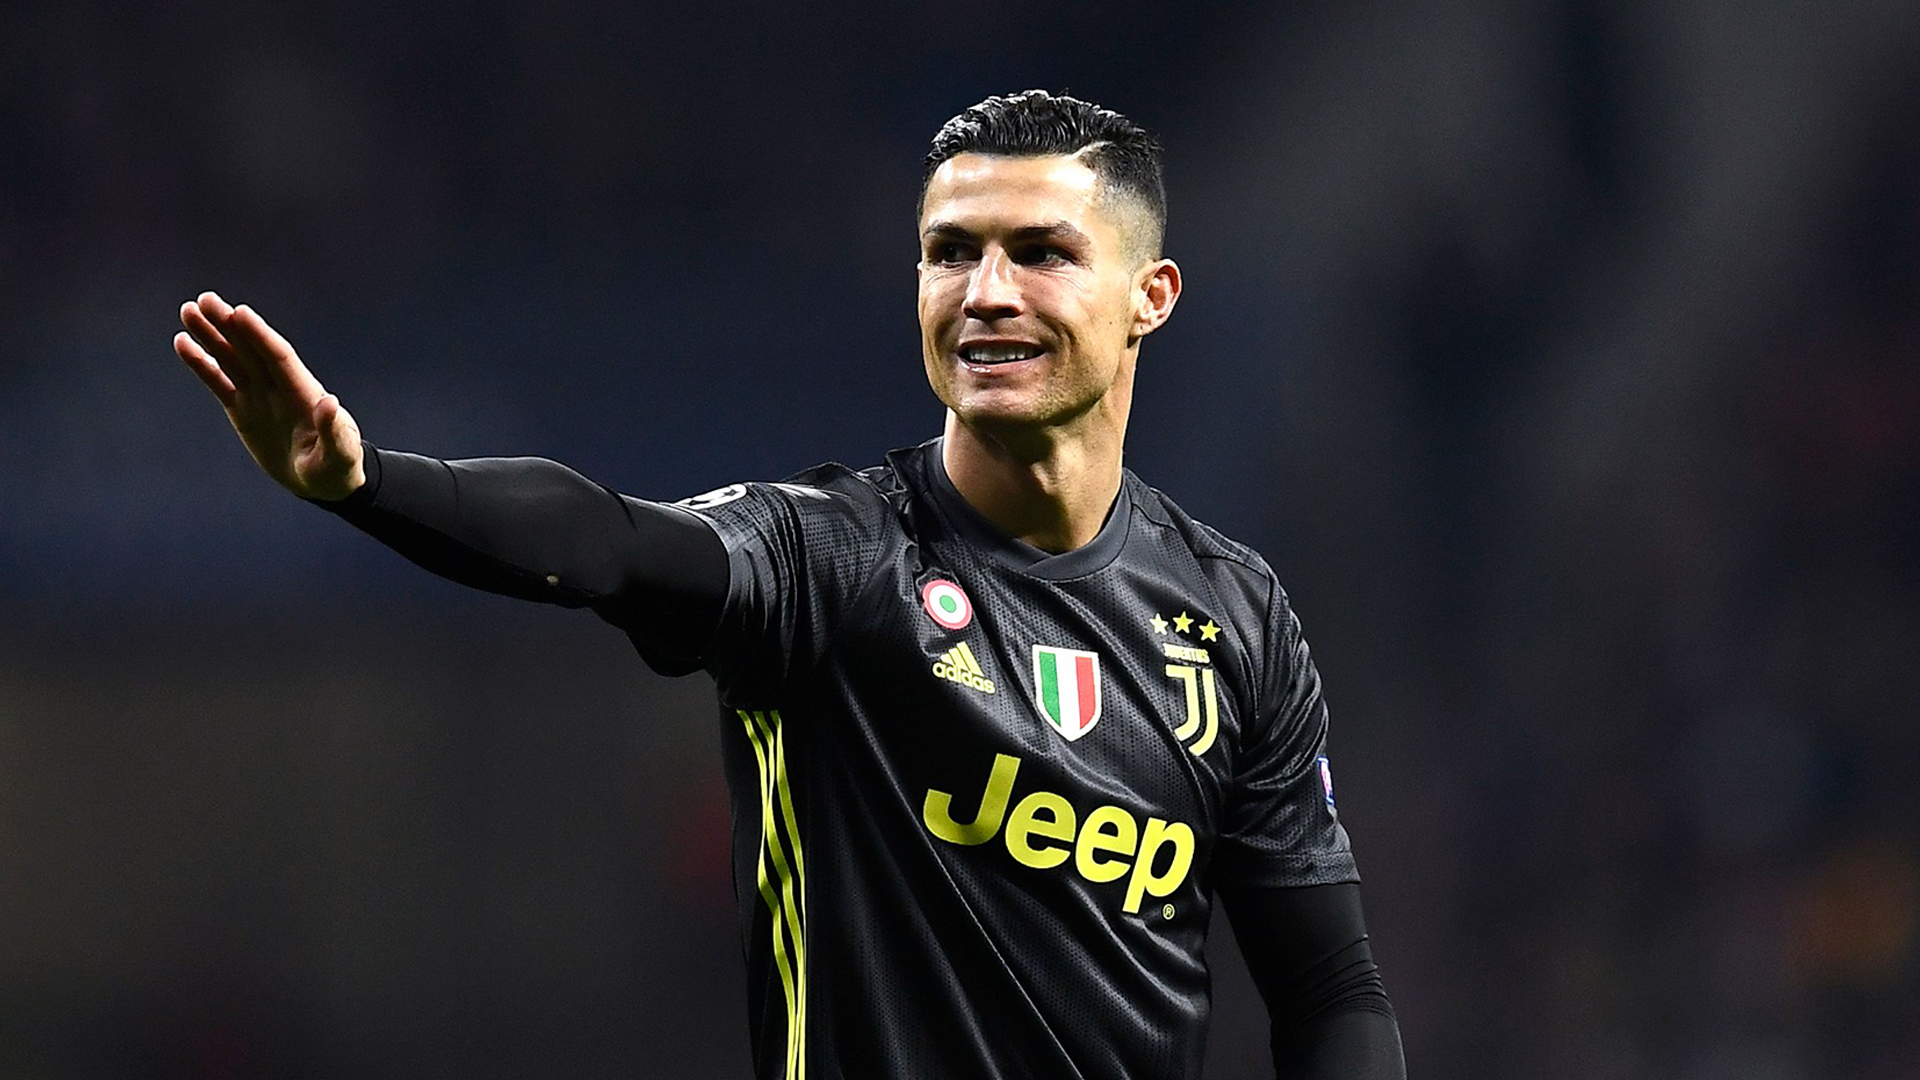 'The Champions League is Cristiano's playground': Fans react to Ronaldo's hat-trick